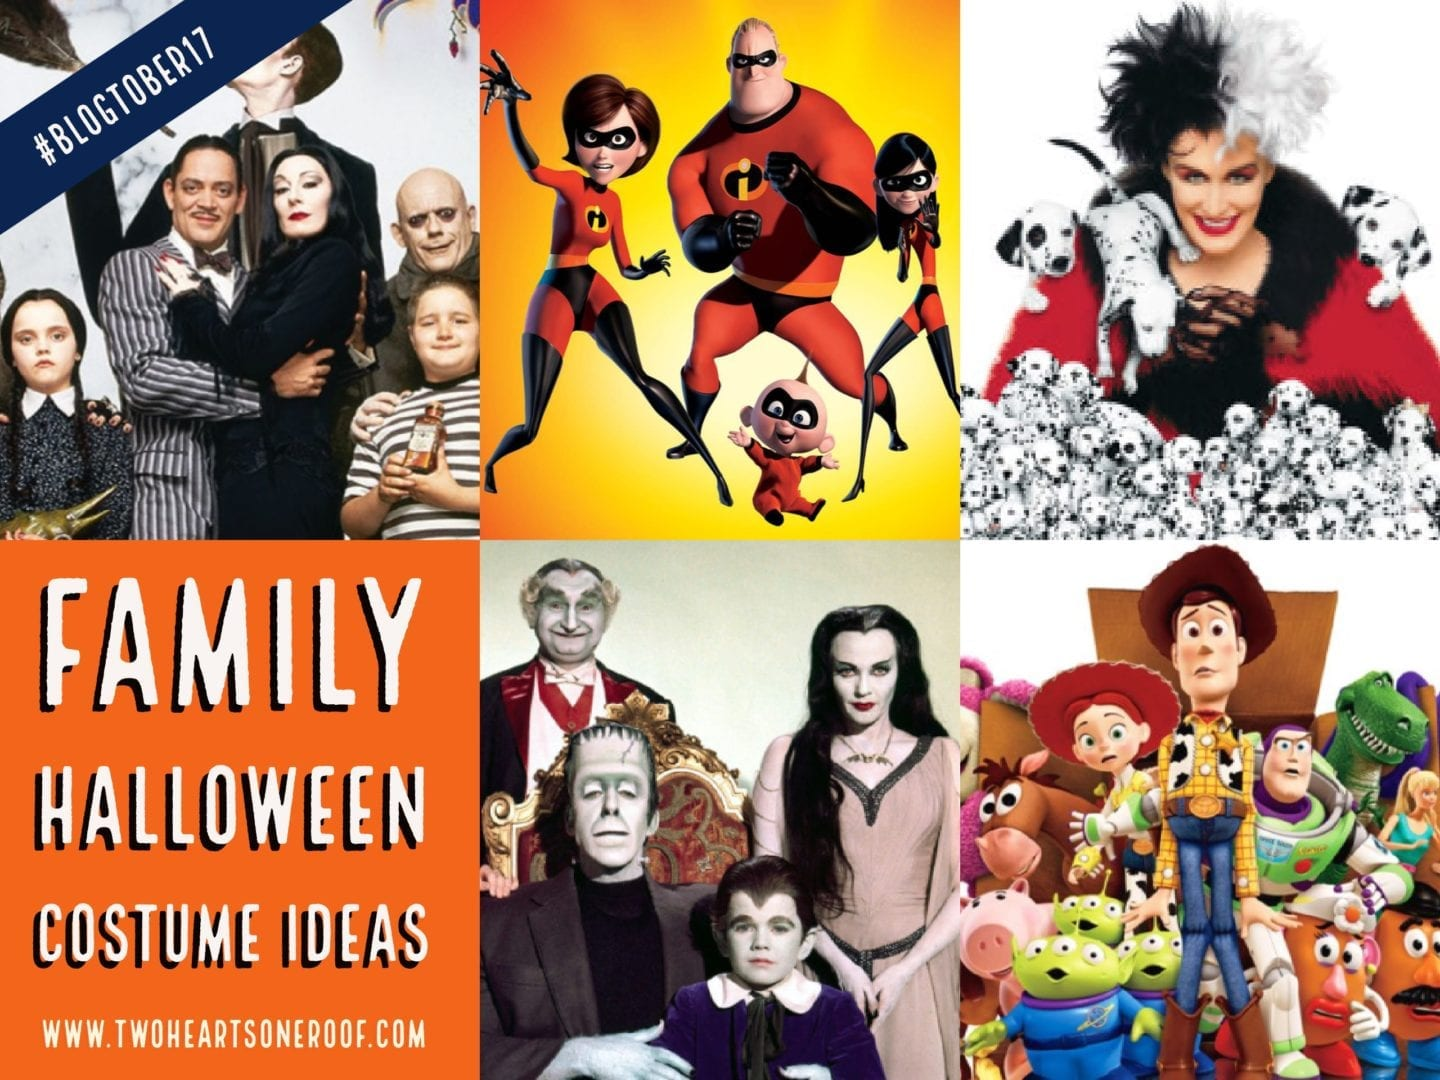 family halloween costume ideas archives - two hearts one roof